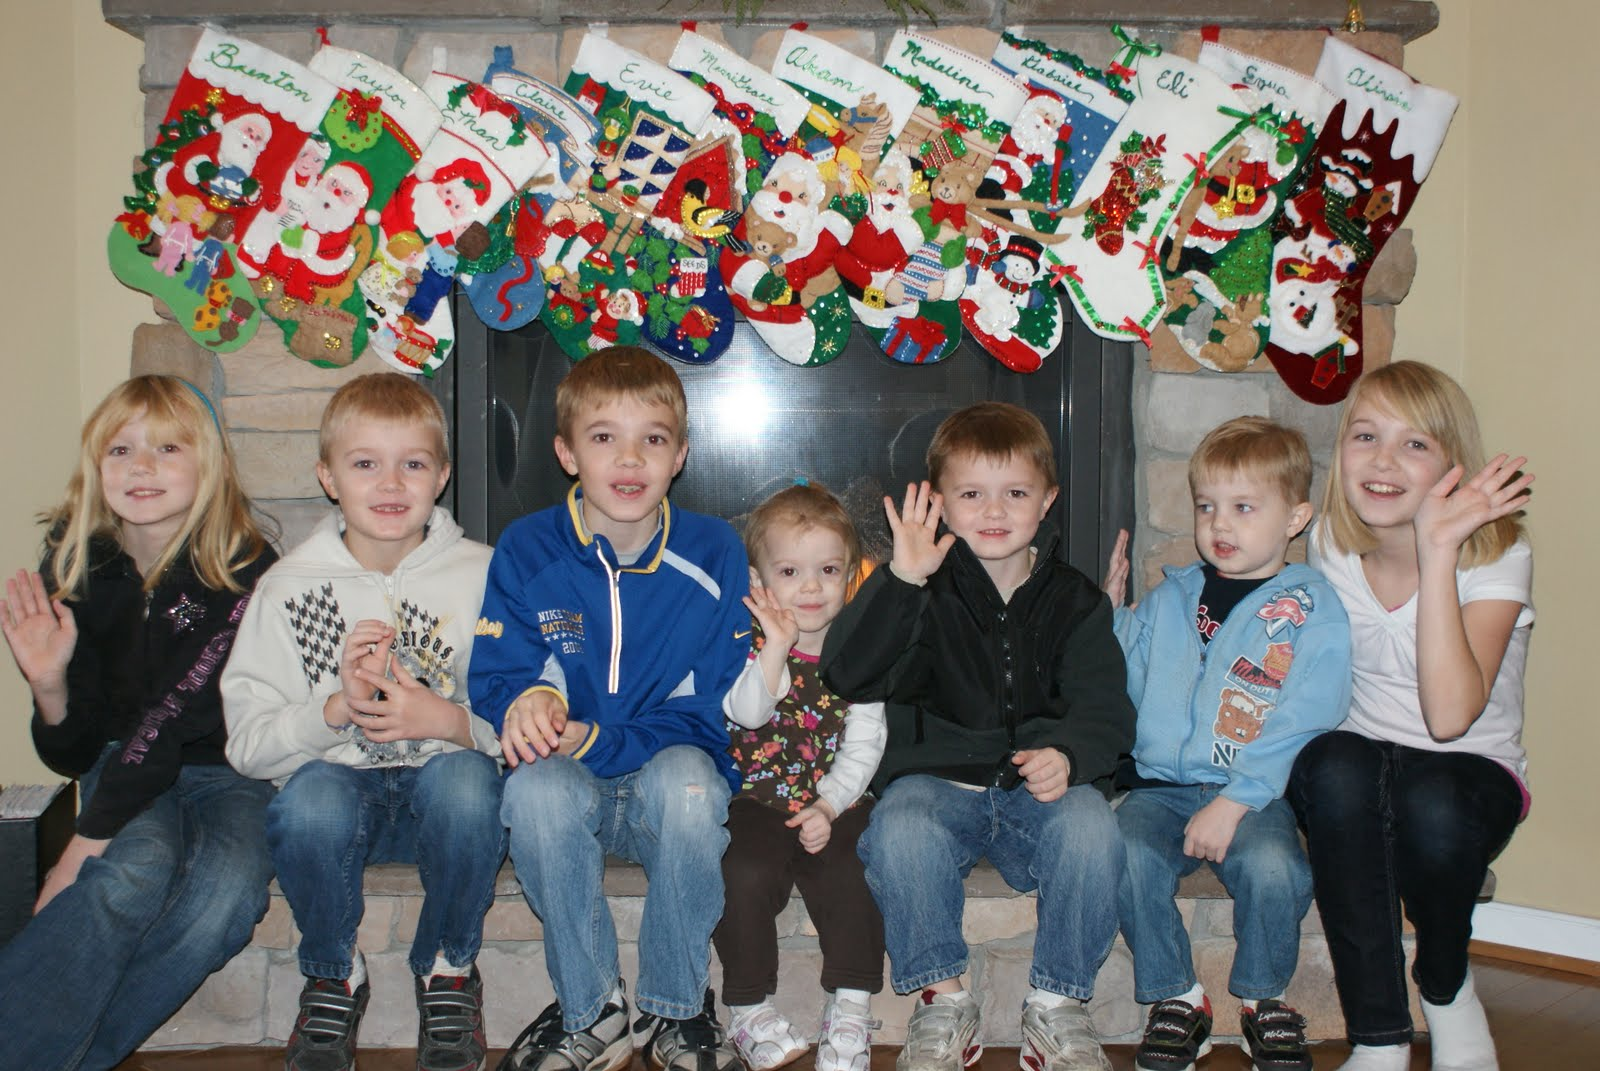 12 Kids ... And Counting?: A Dozen Christmas Stockings On The Fireplace